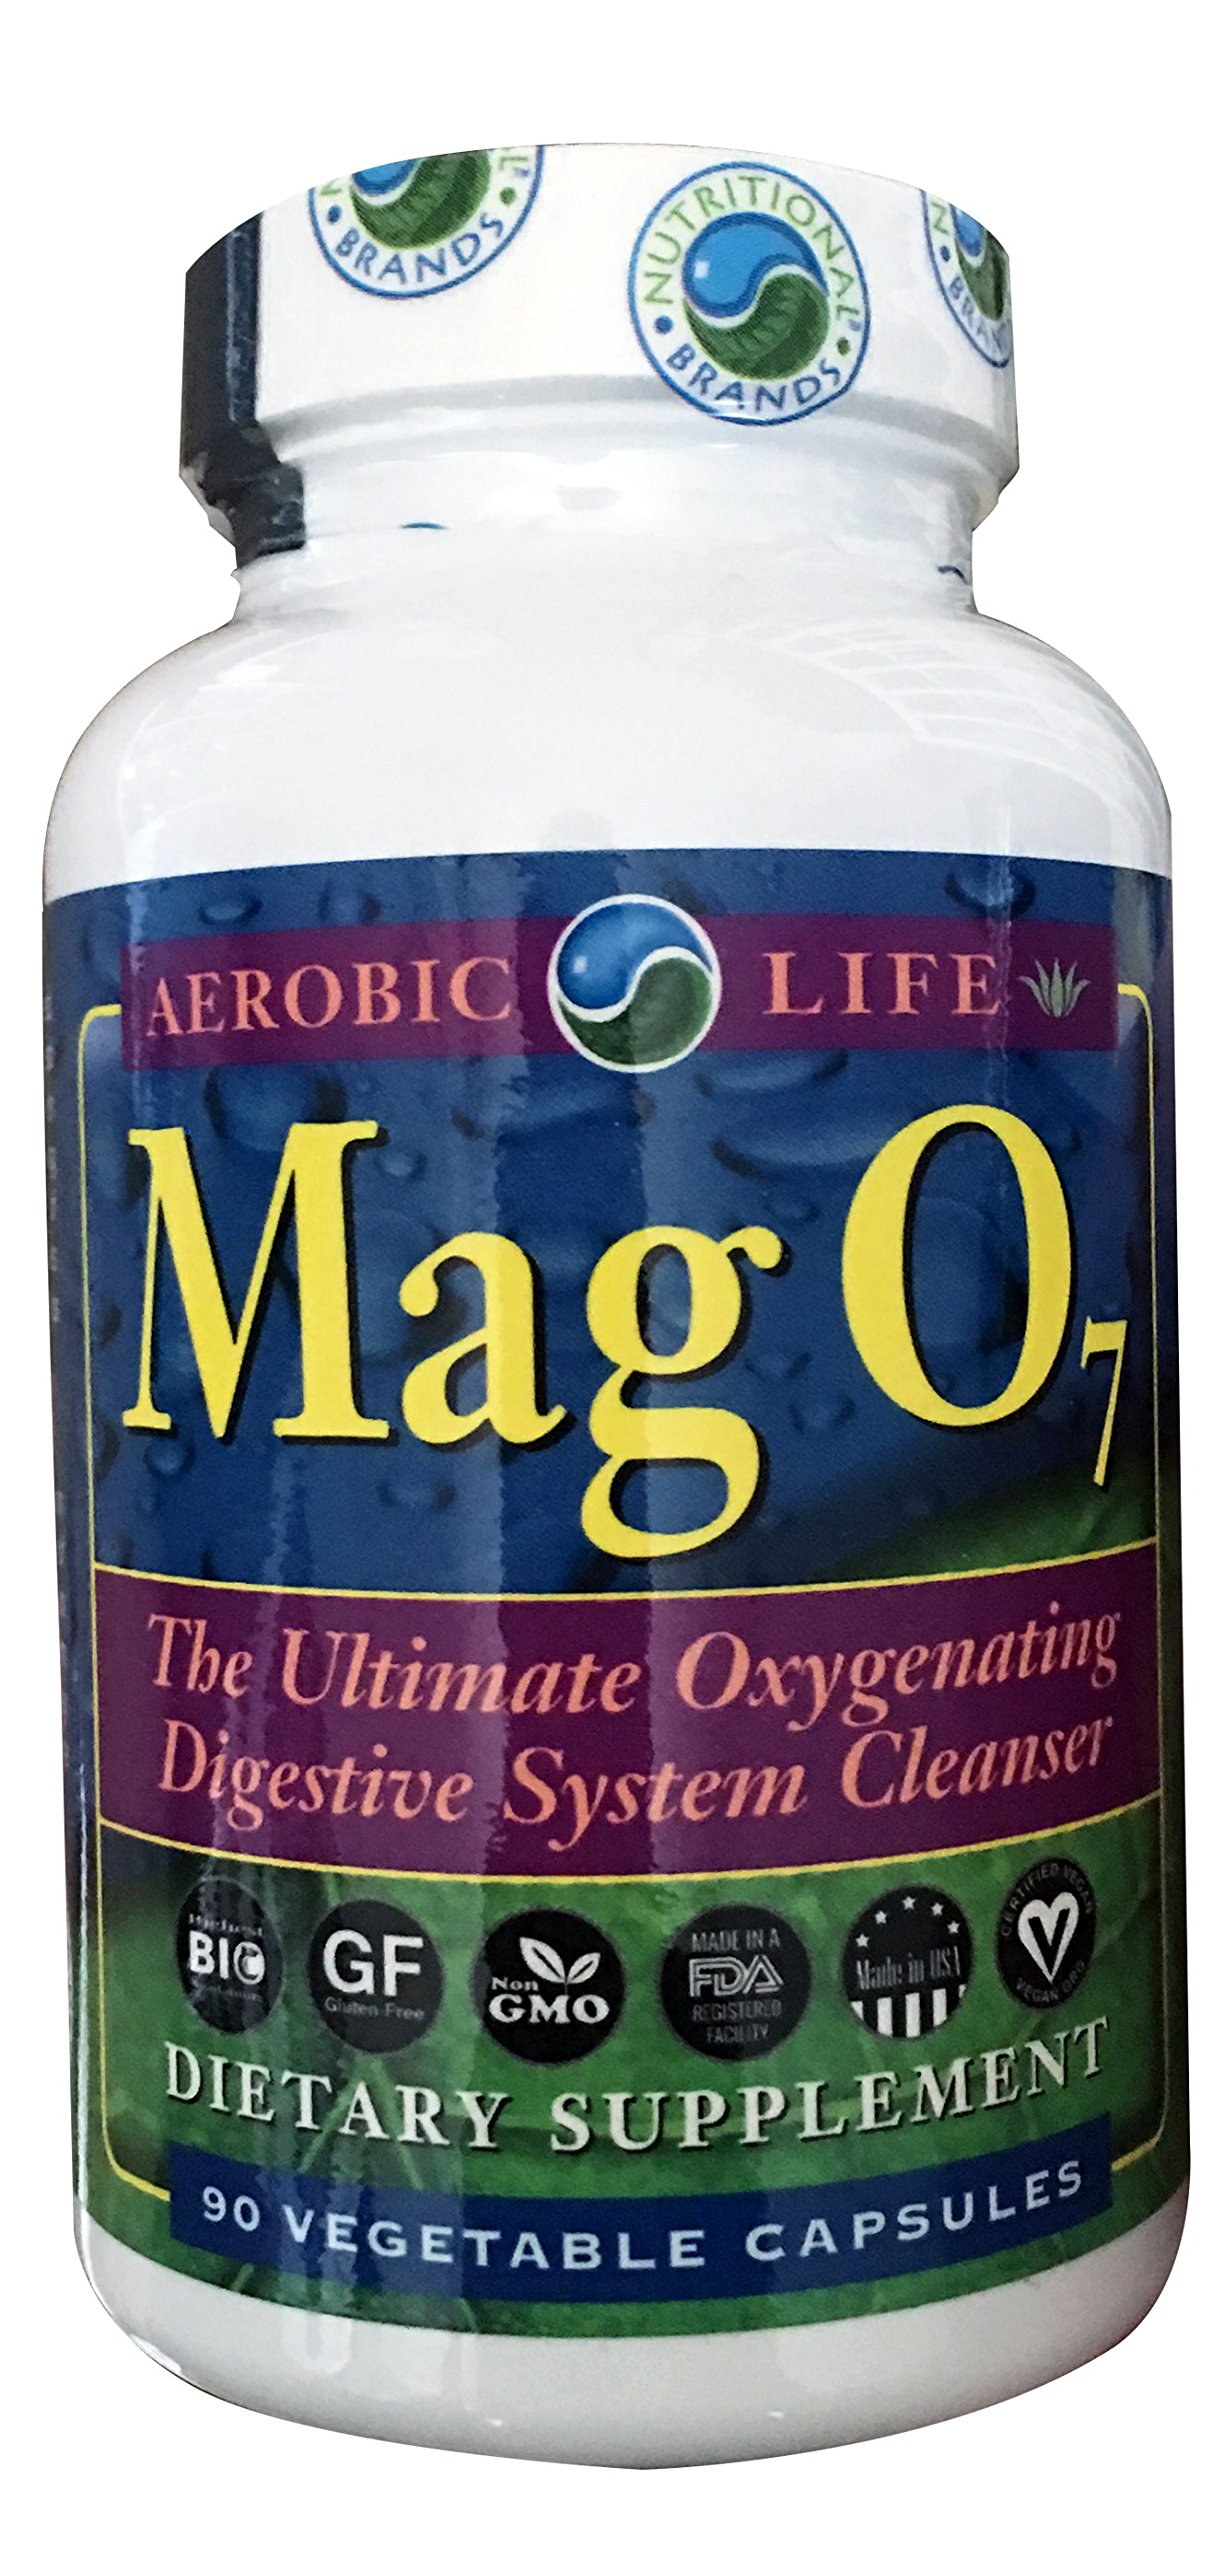 Aerobic Life Mag O7 Oxygen Digestive System Cleanser Capsules,  90 Count by Aerobic Life